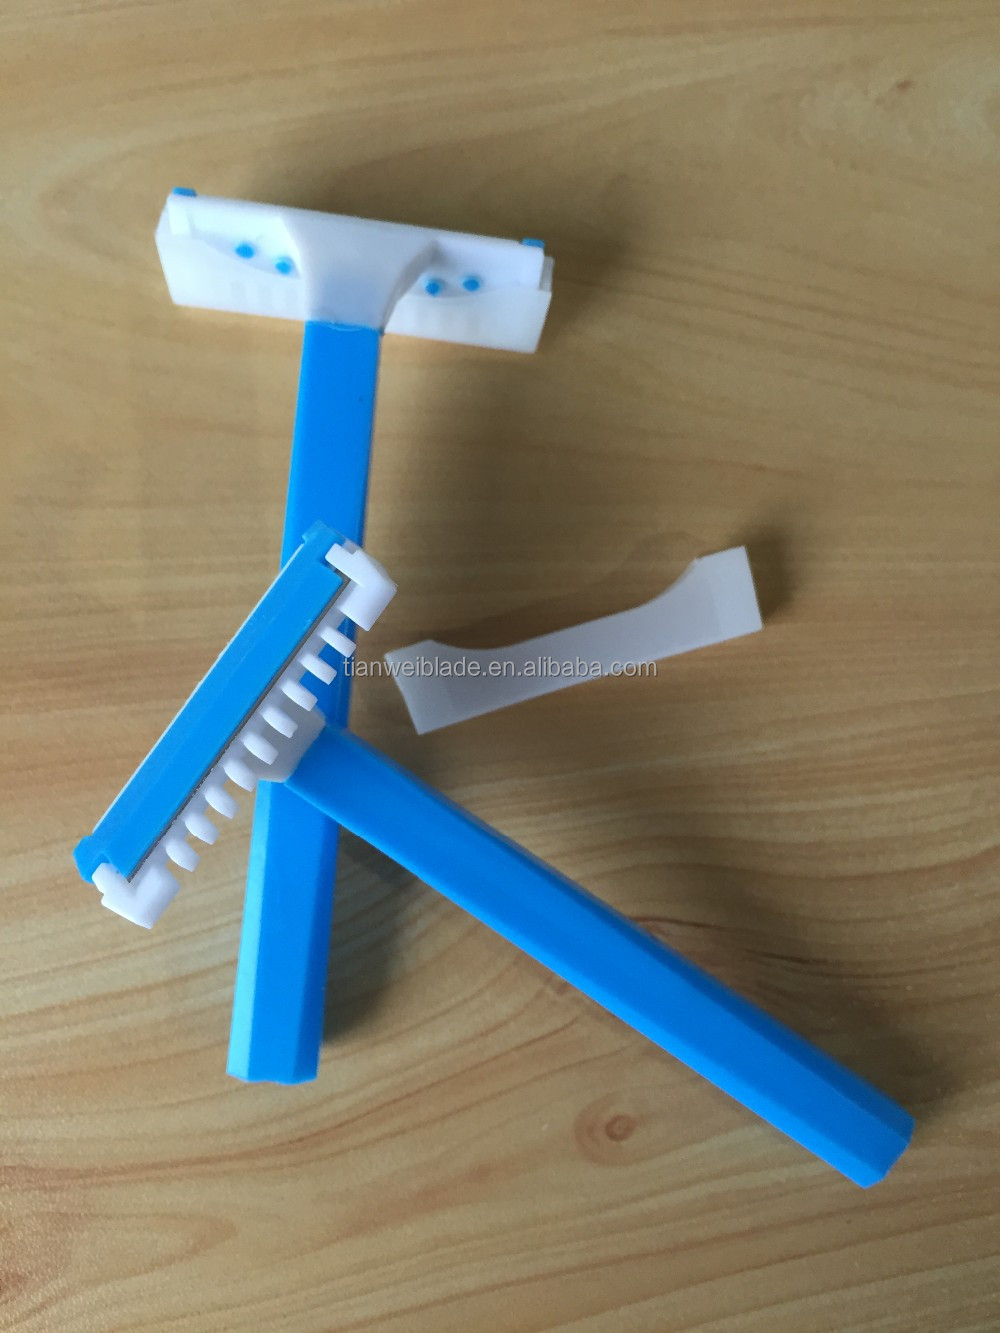 Medical Disposable Razor in Hospital with comb